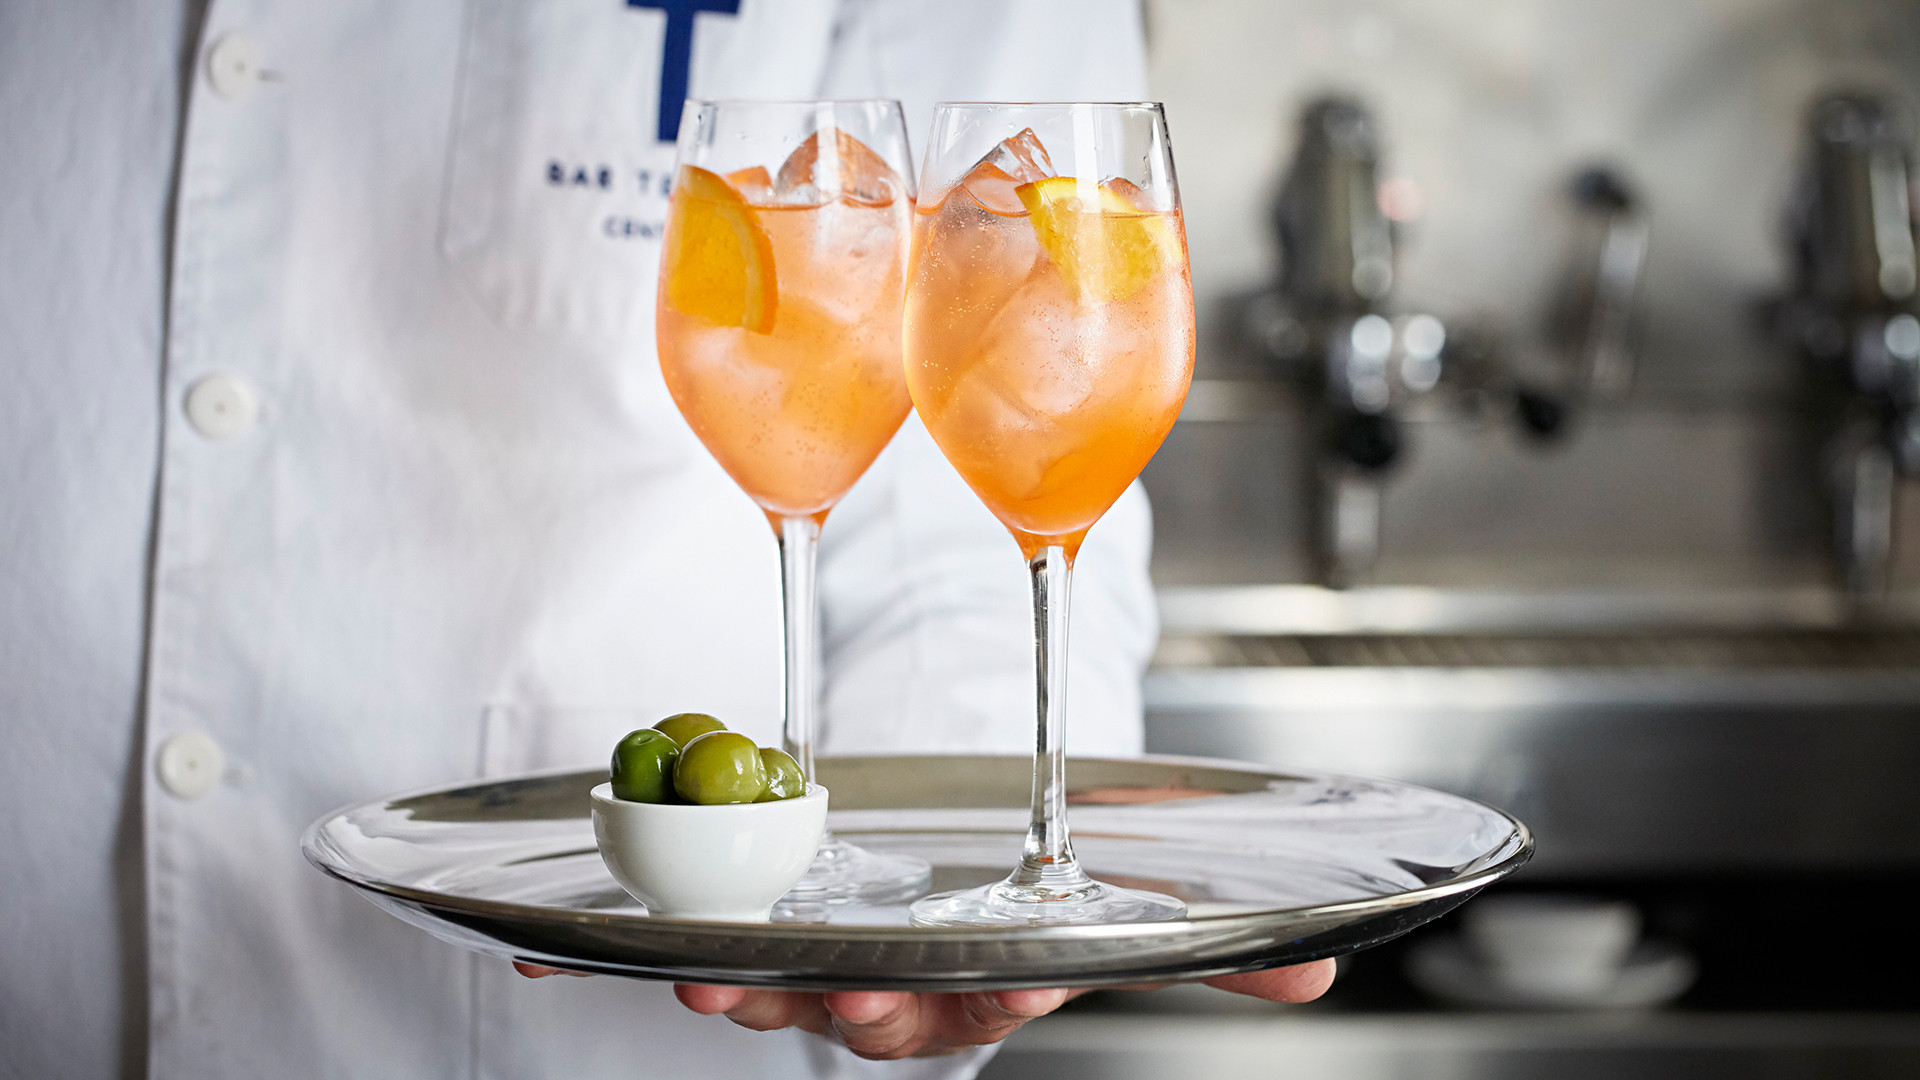 Spritz and olives at Bar Termini